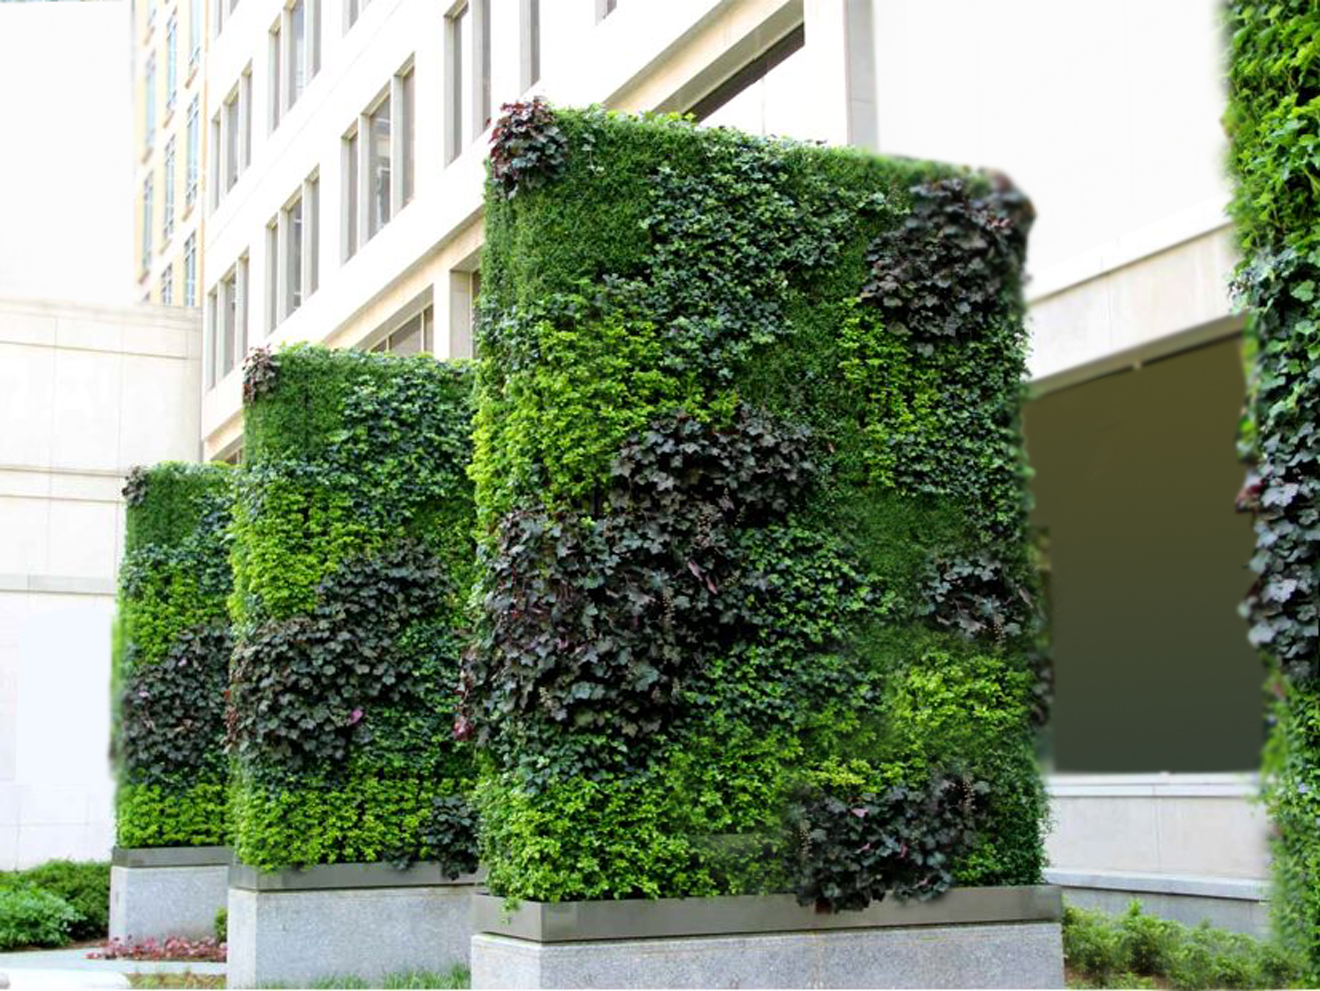 World class green wall vertical garden by technic garden for Vertical garden design